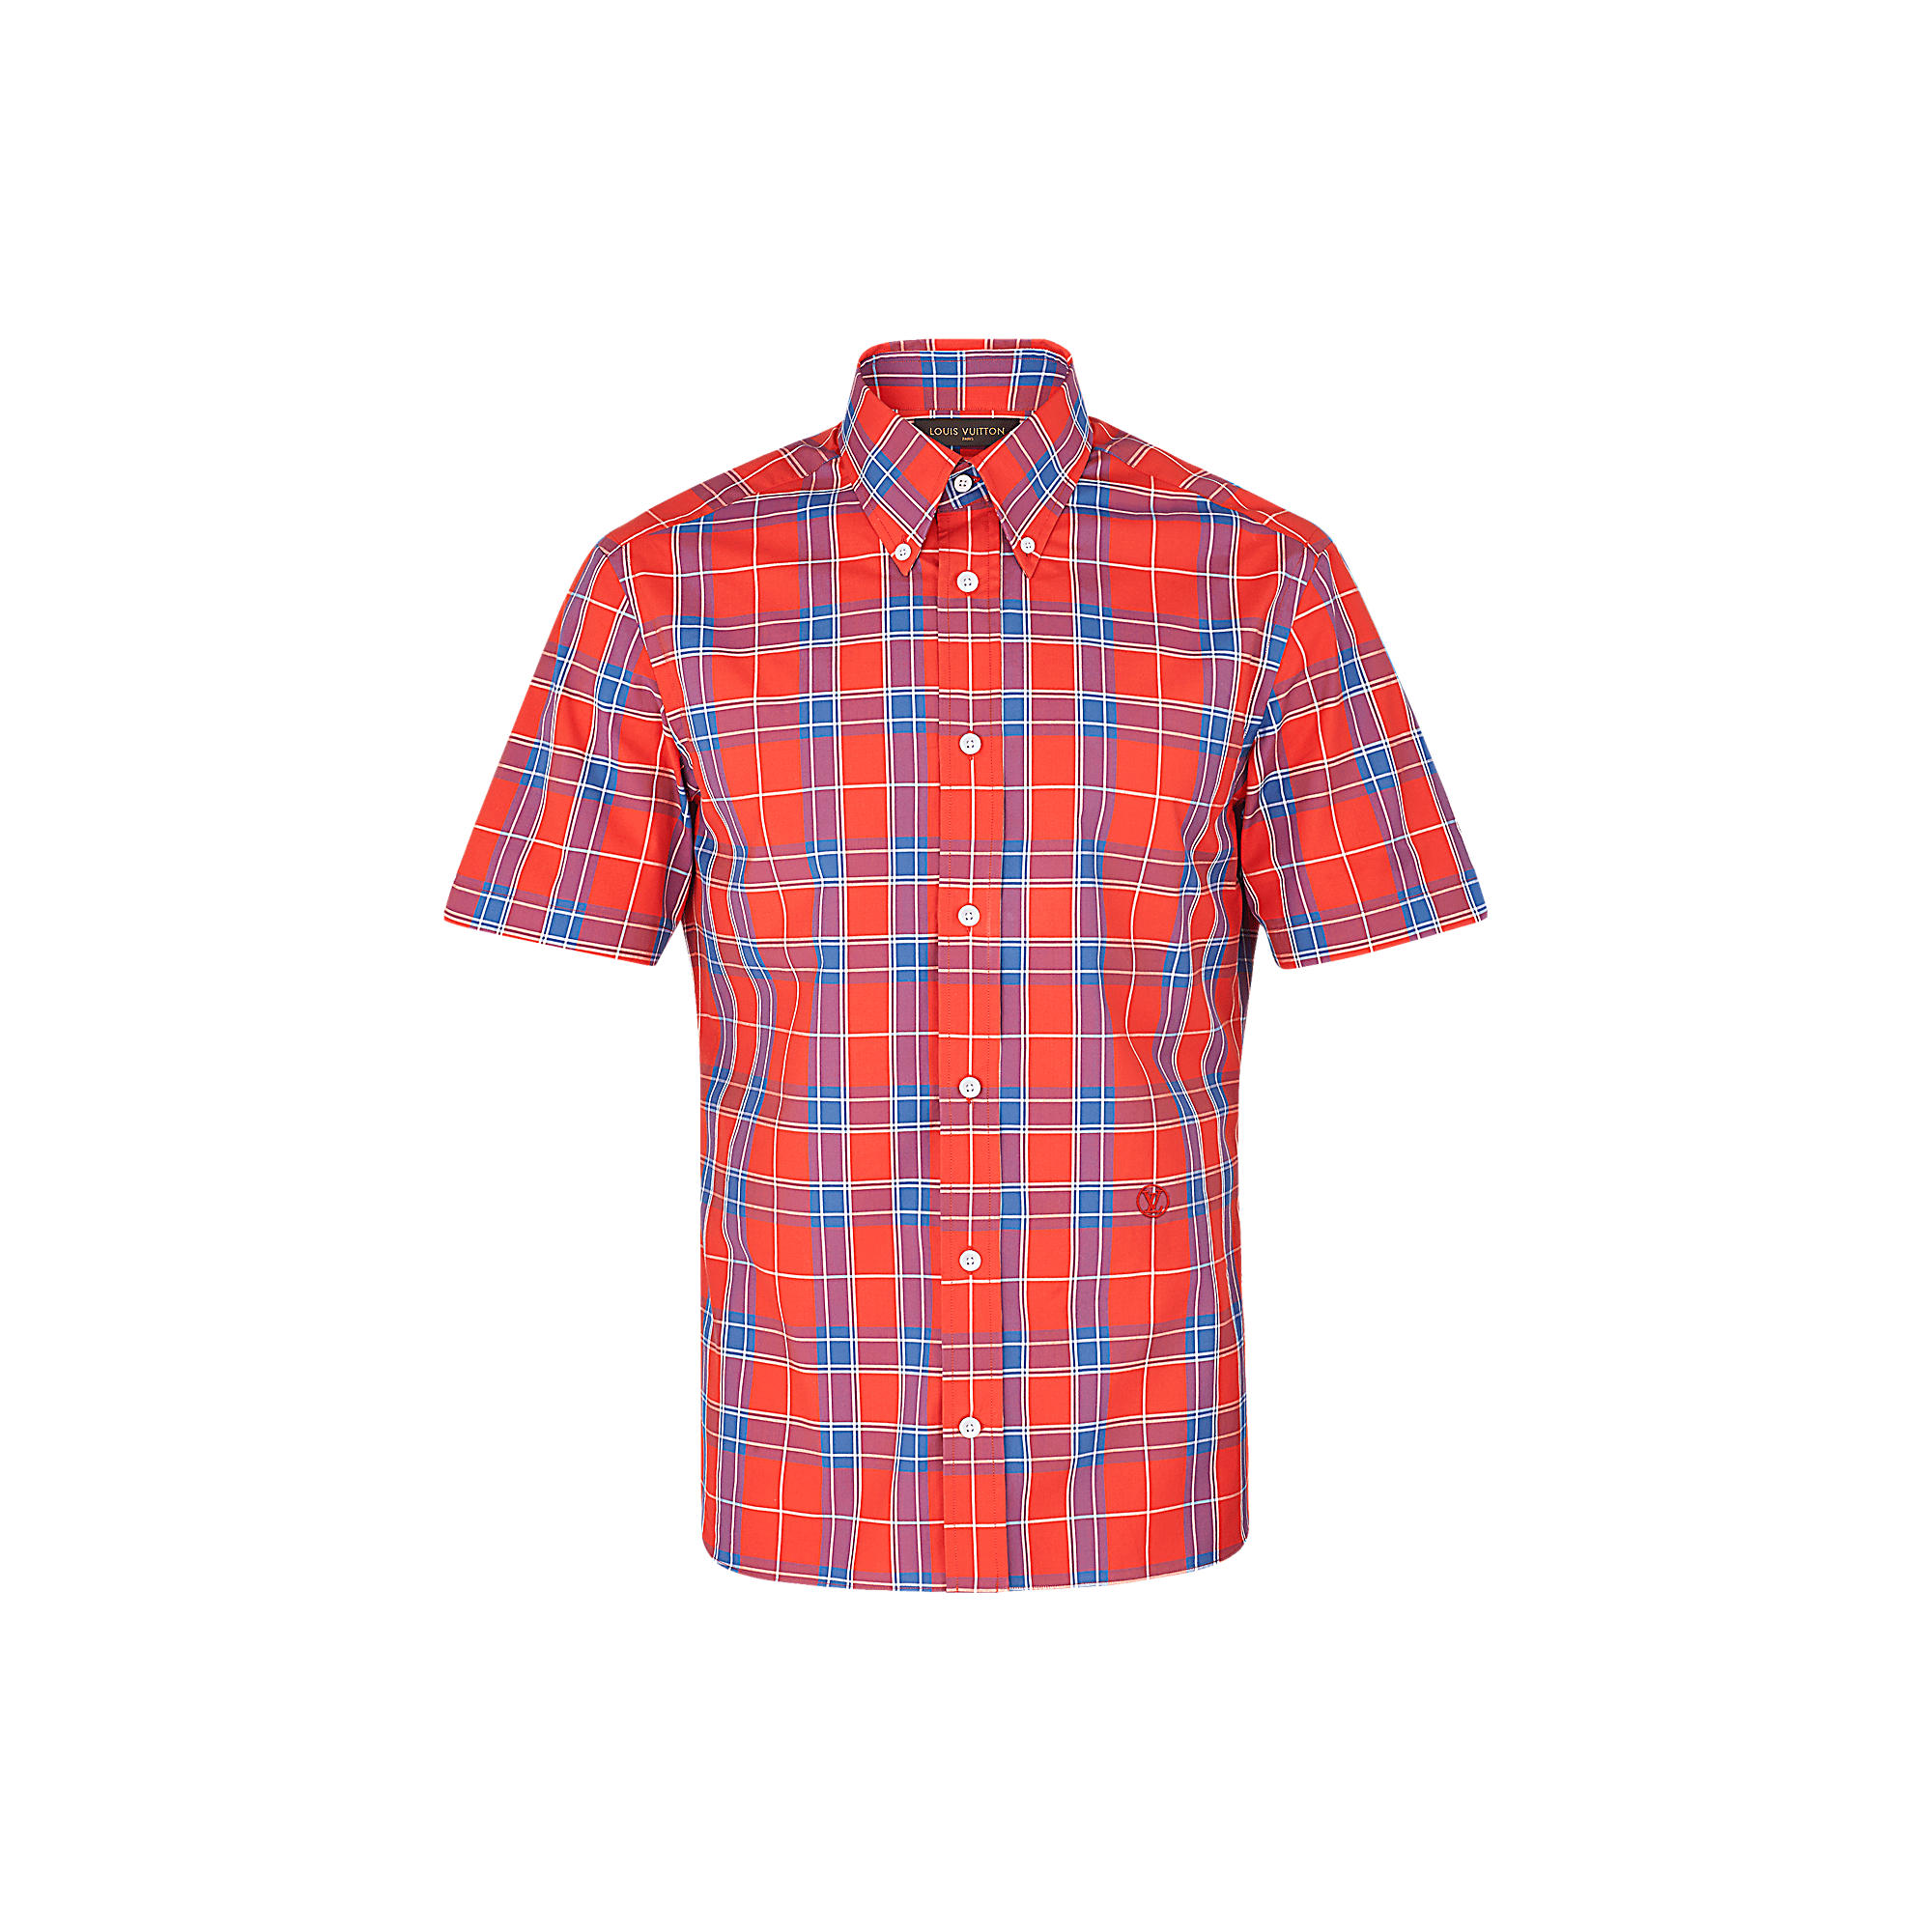 Louis Vuitton Uomo Camicia button-down ricamata a maniche corte